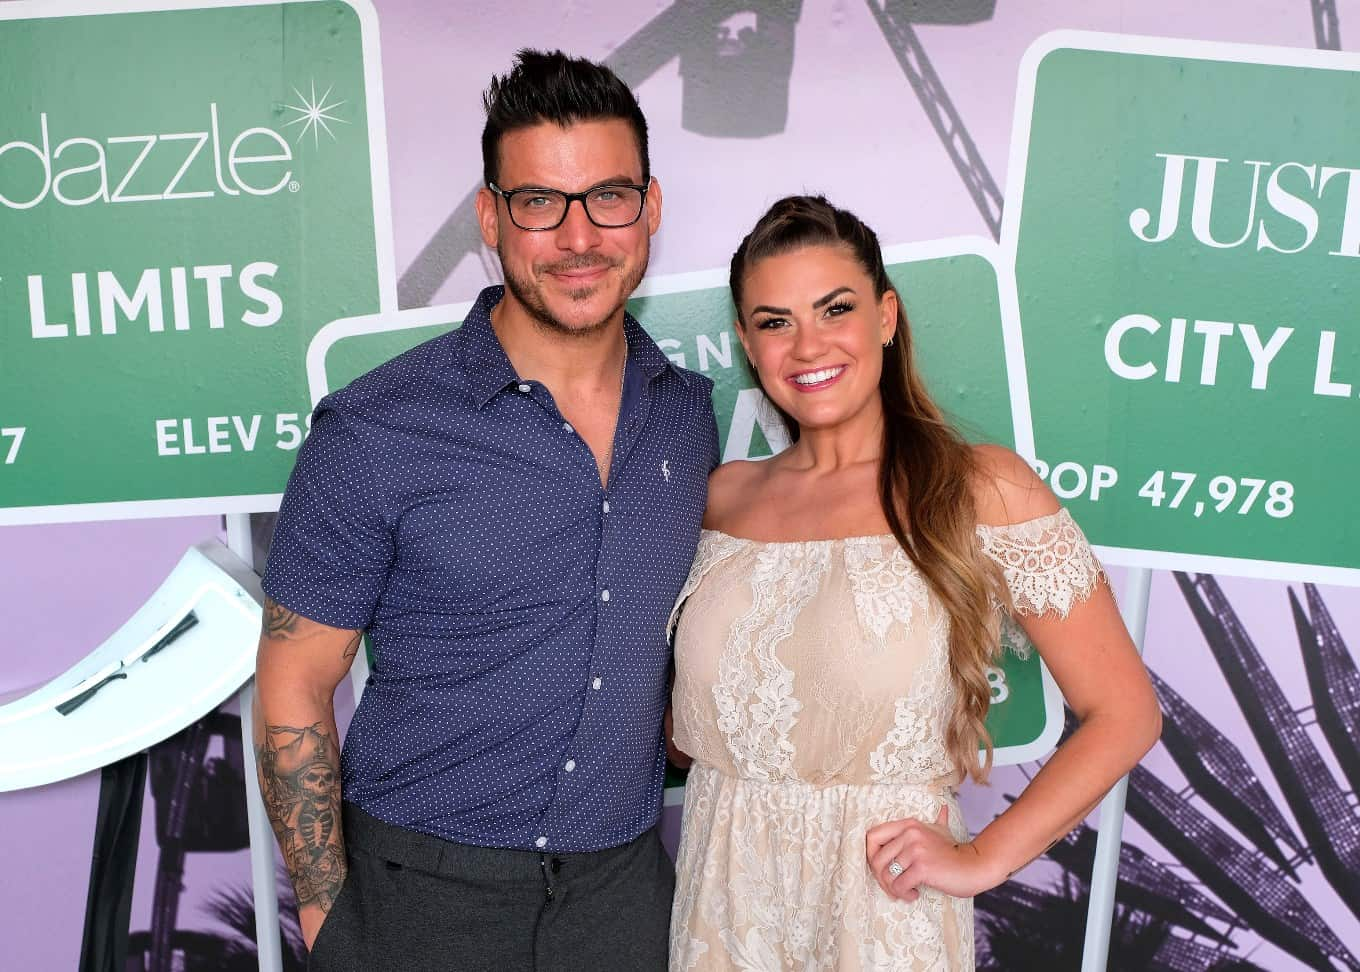 Vanderpump Rules Star Jax Taylor Spotted Without His Wedding Ring Just Under Two Months After Marrying Brittany Cartwright, Plus Is Jax's Friendship Drama Affecting Their Relationship?